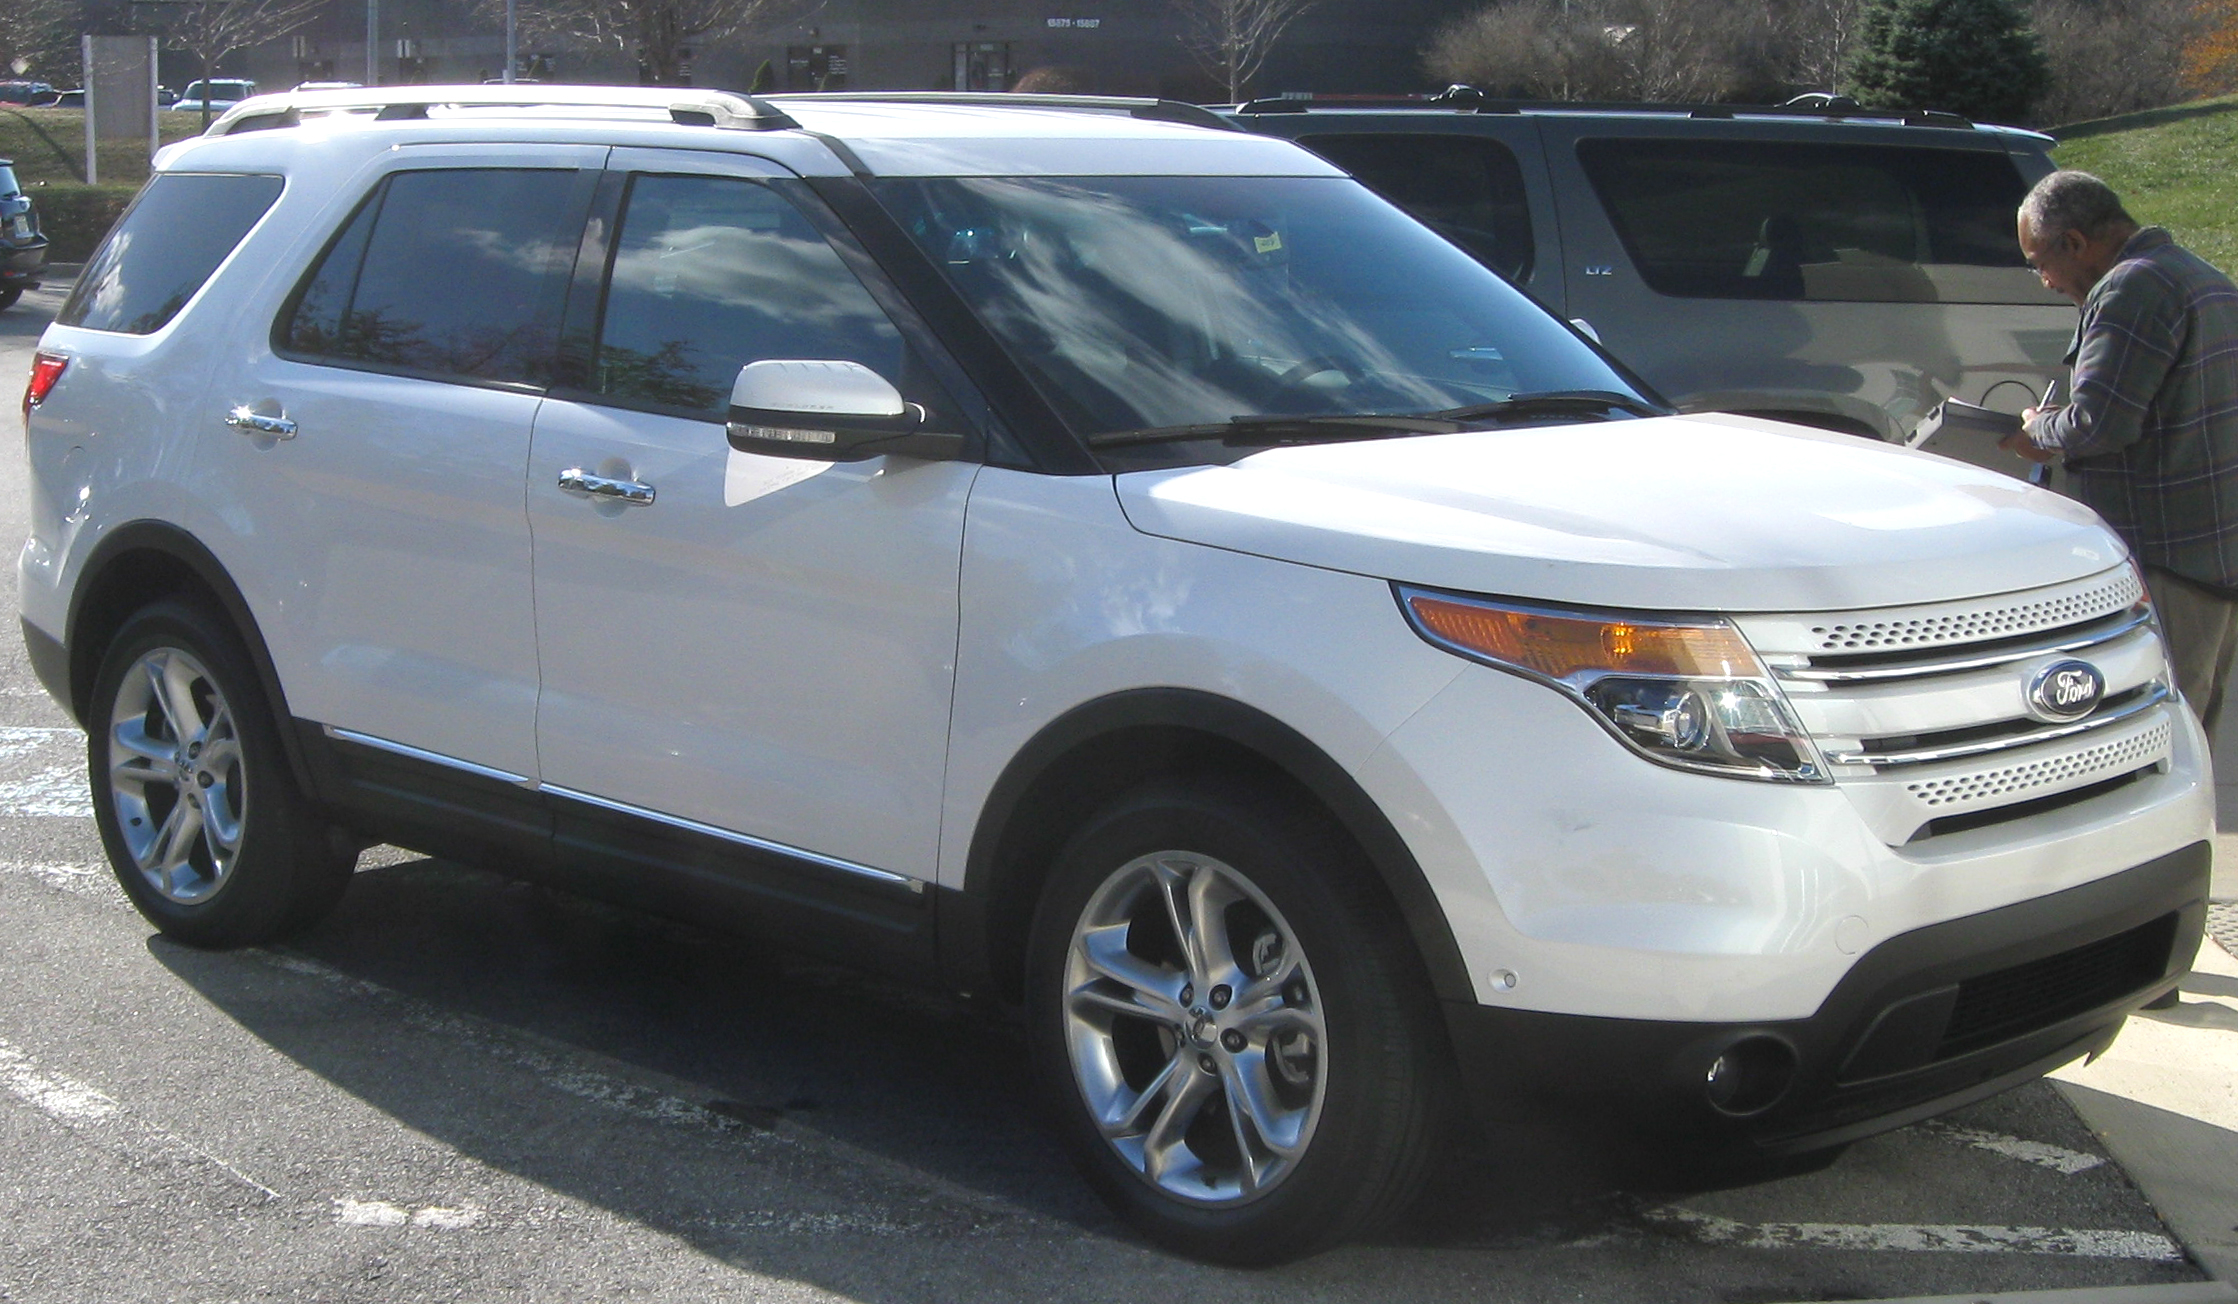 Ford Explorer 2011 Limited >> File:2011 Ford Explorer Limited -- 12-15-2010 1.jpg - Wikimedia Commons